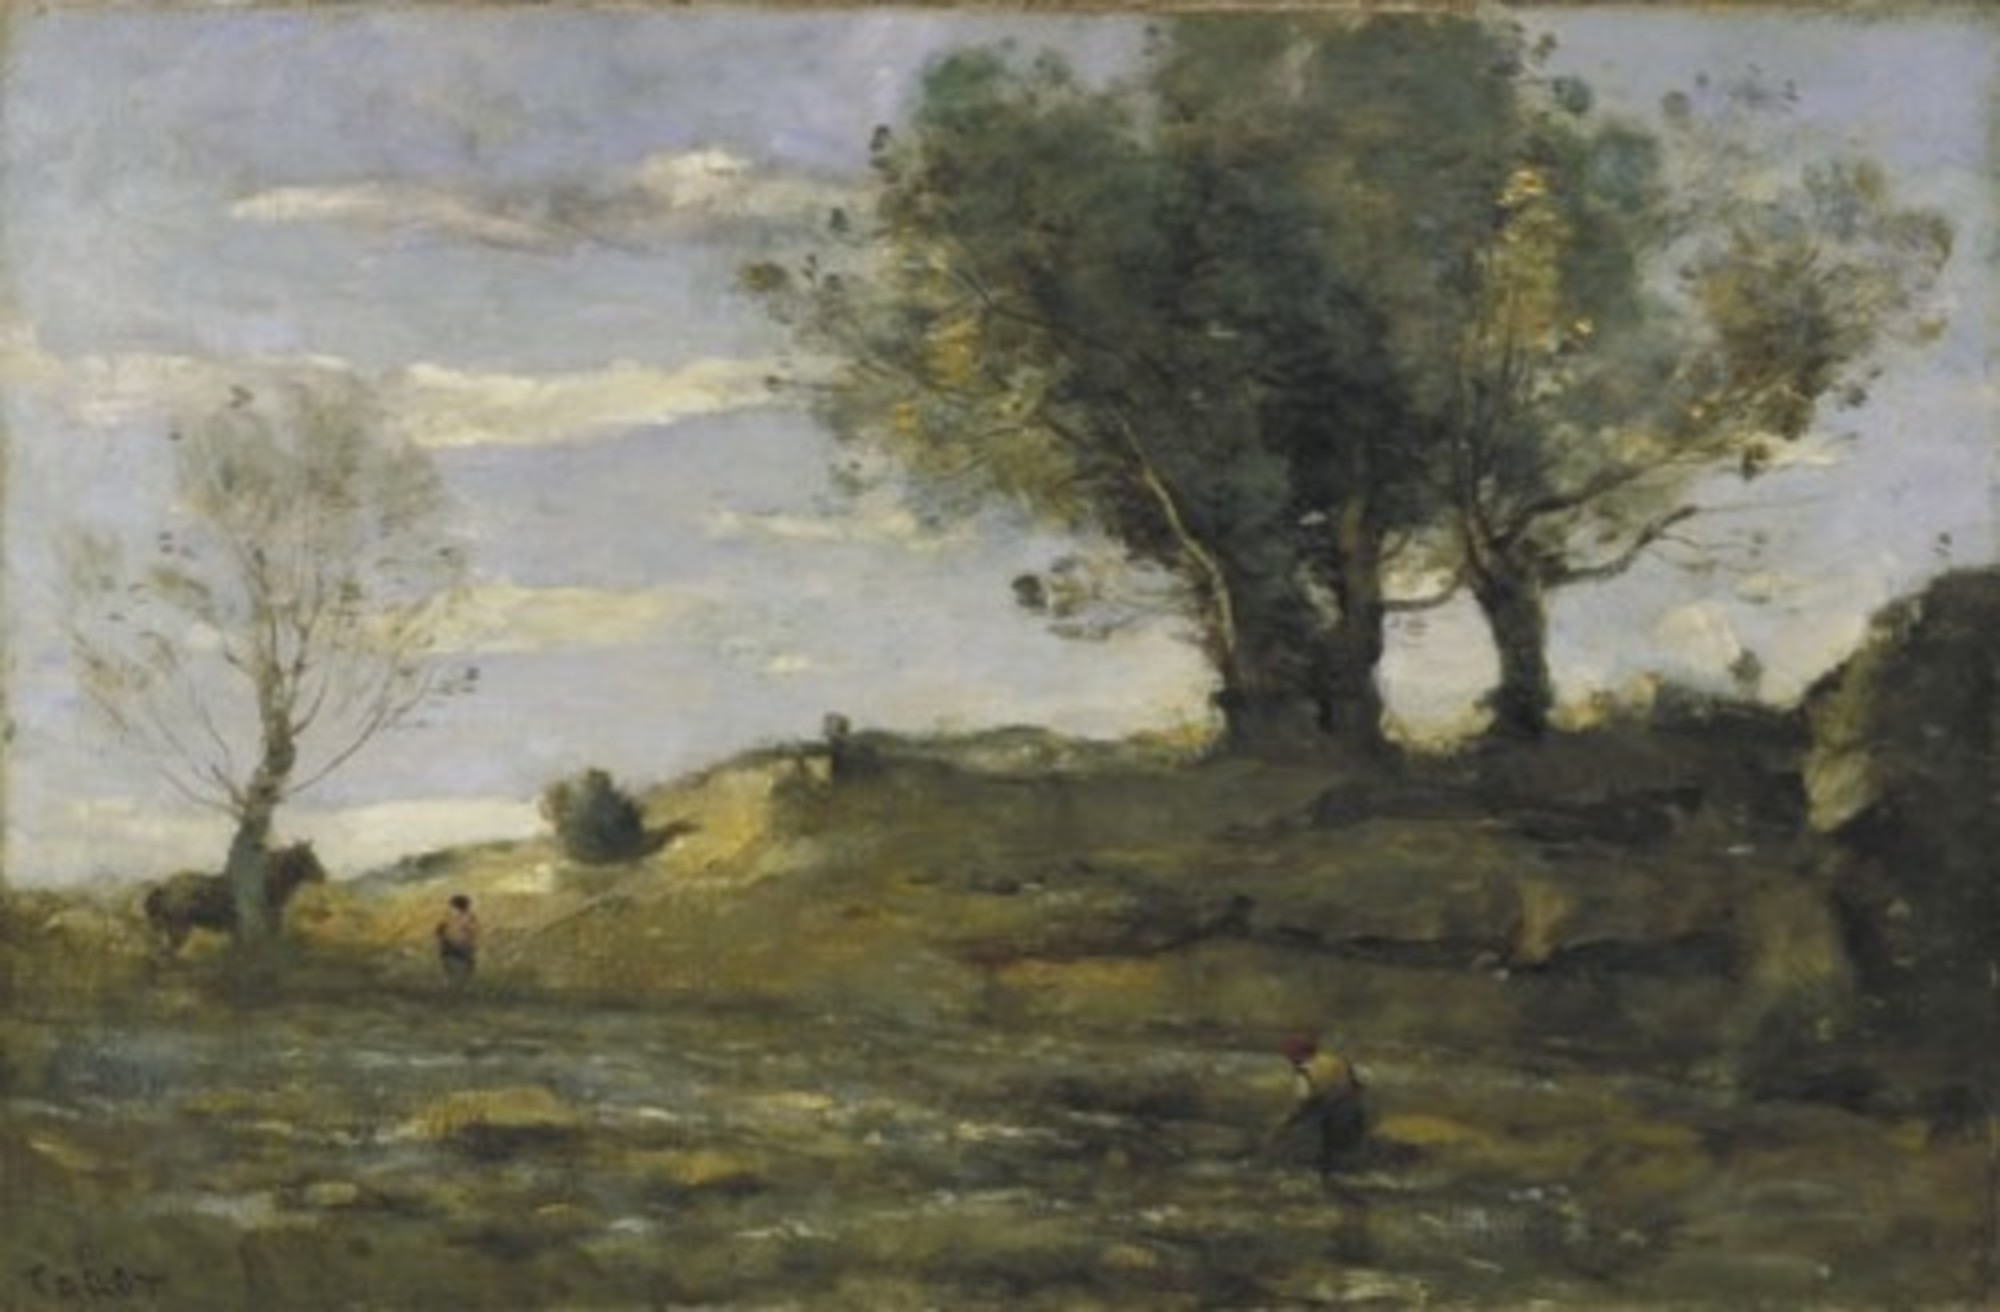 Corot---The-River-bank-Le-Rivage-circa-1870.jpg